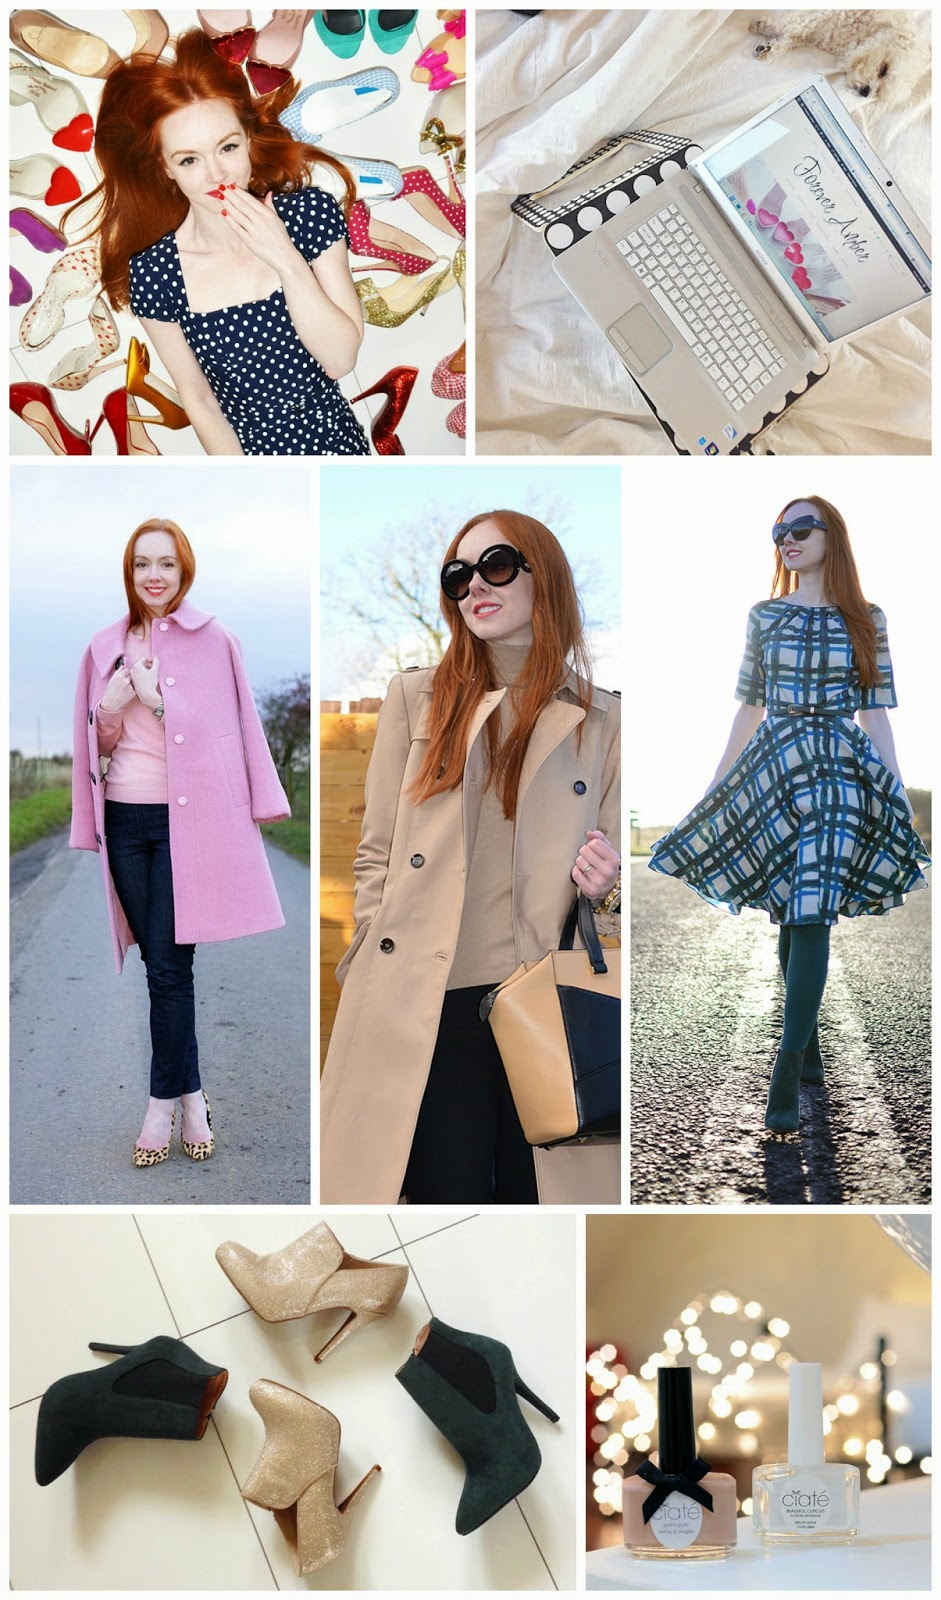 Blog crush, blogger crushes, favourite bloggers, Forever Amber, red head